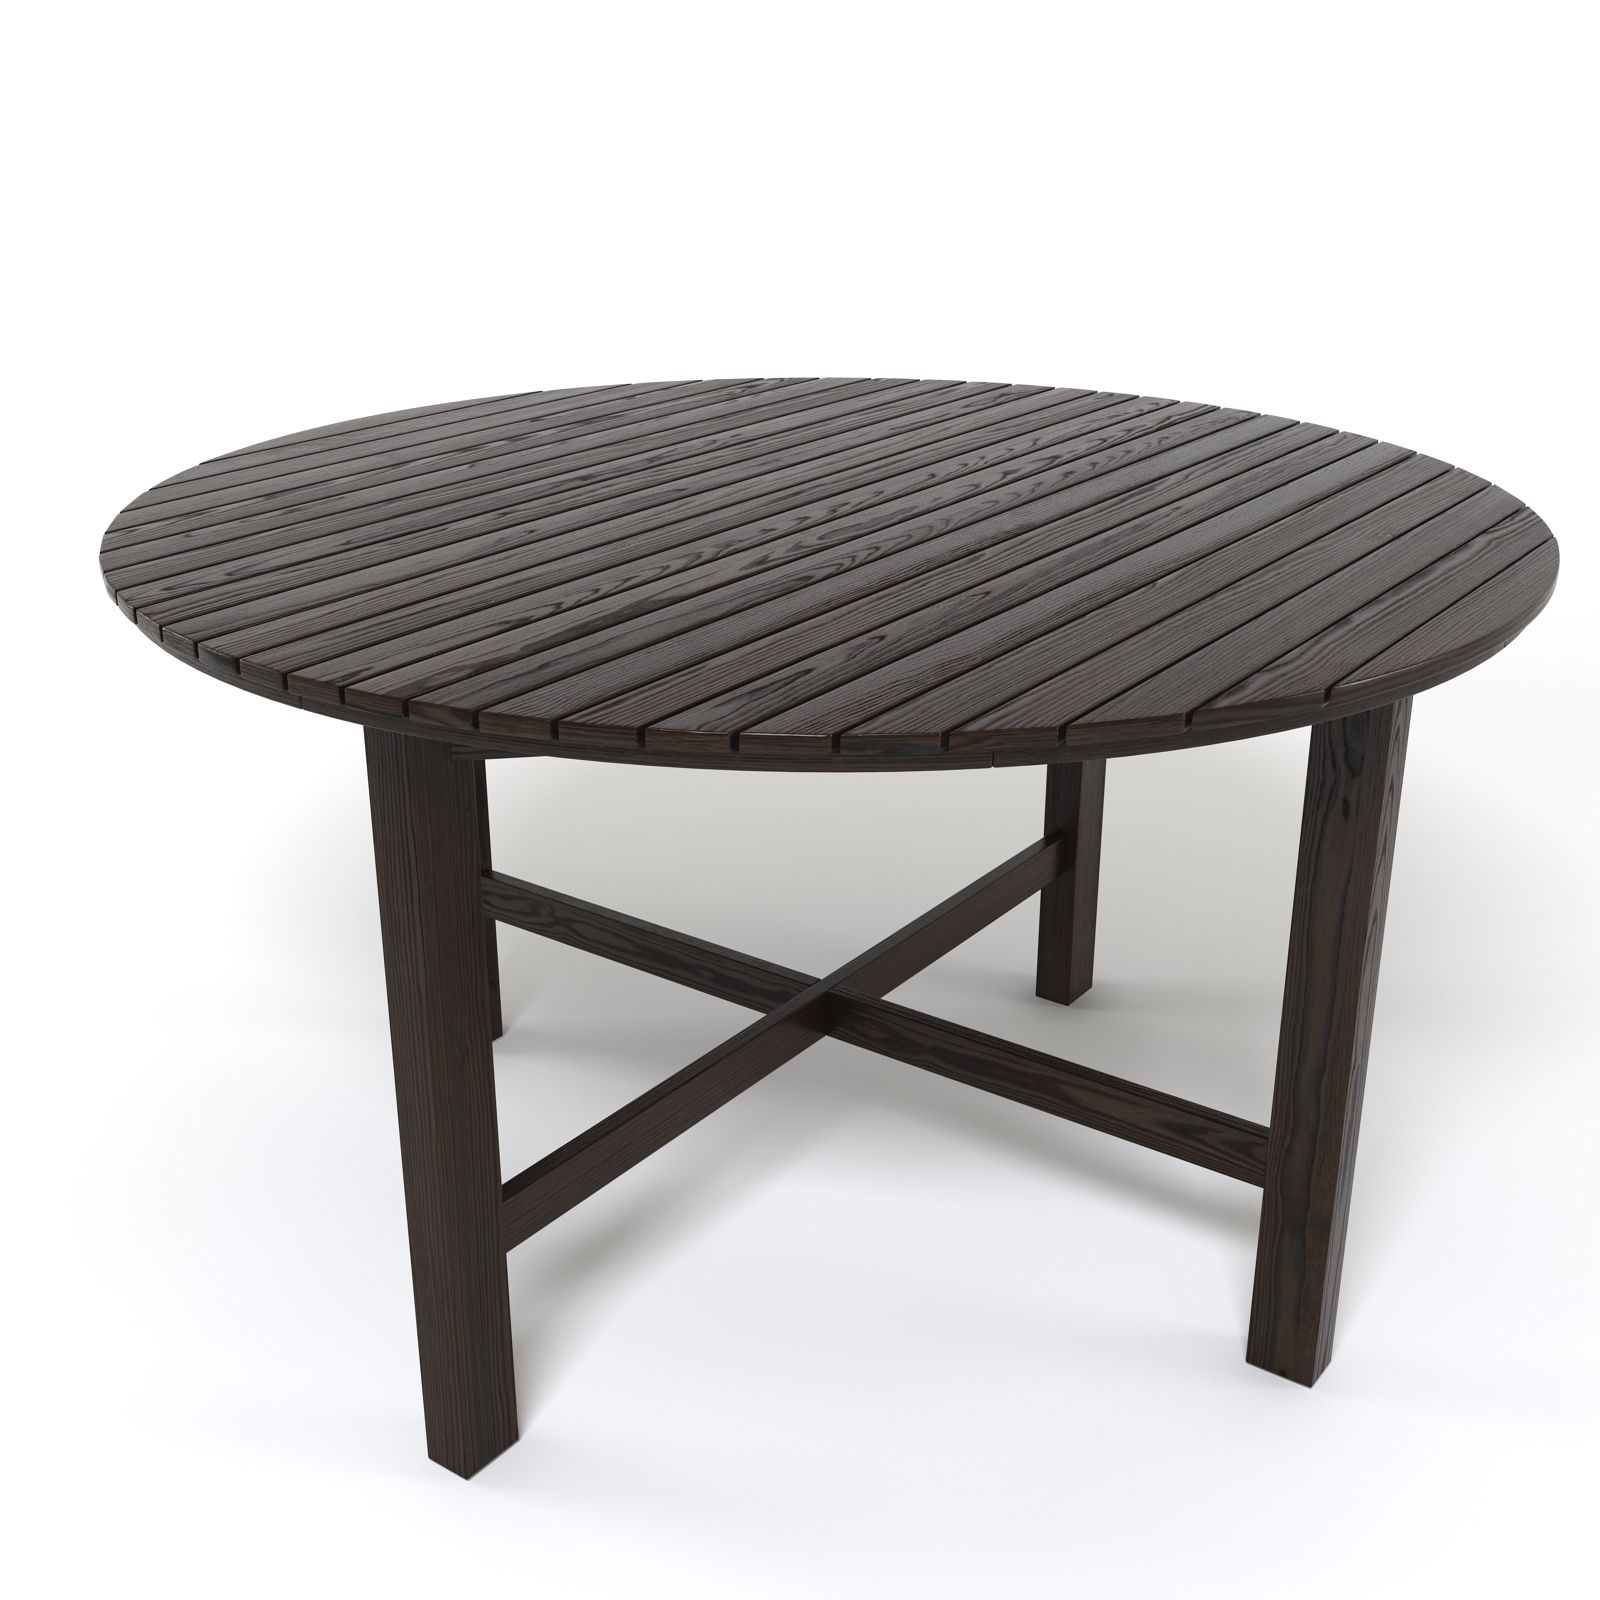 Ikea Angso Table And Chairs Table And Chairs Dark Brown Table